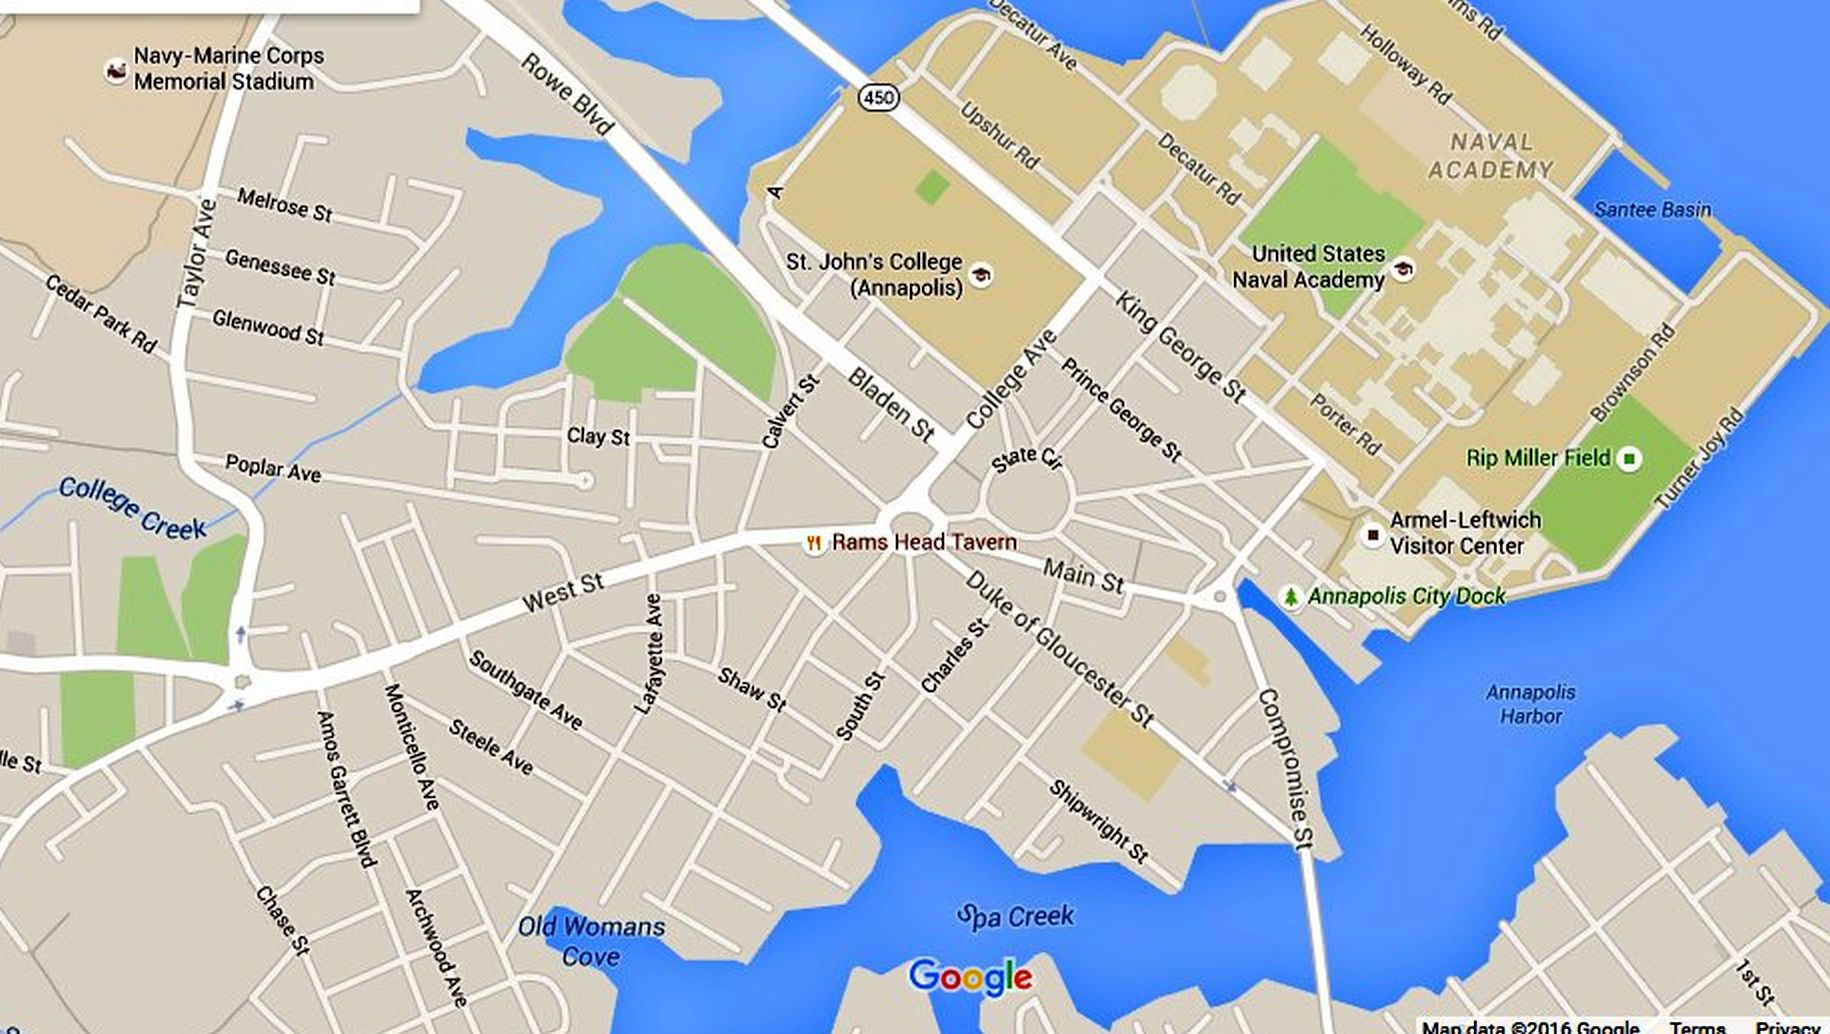 Map Of Annapolis Annapolis Maps: Downtown and the Surrounding Area Map Of Annapolis